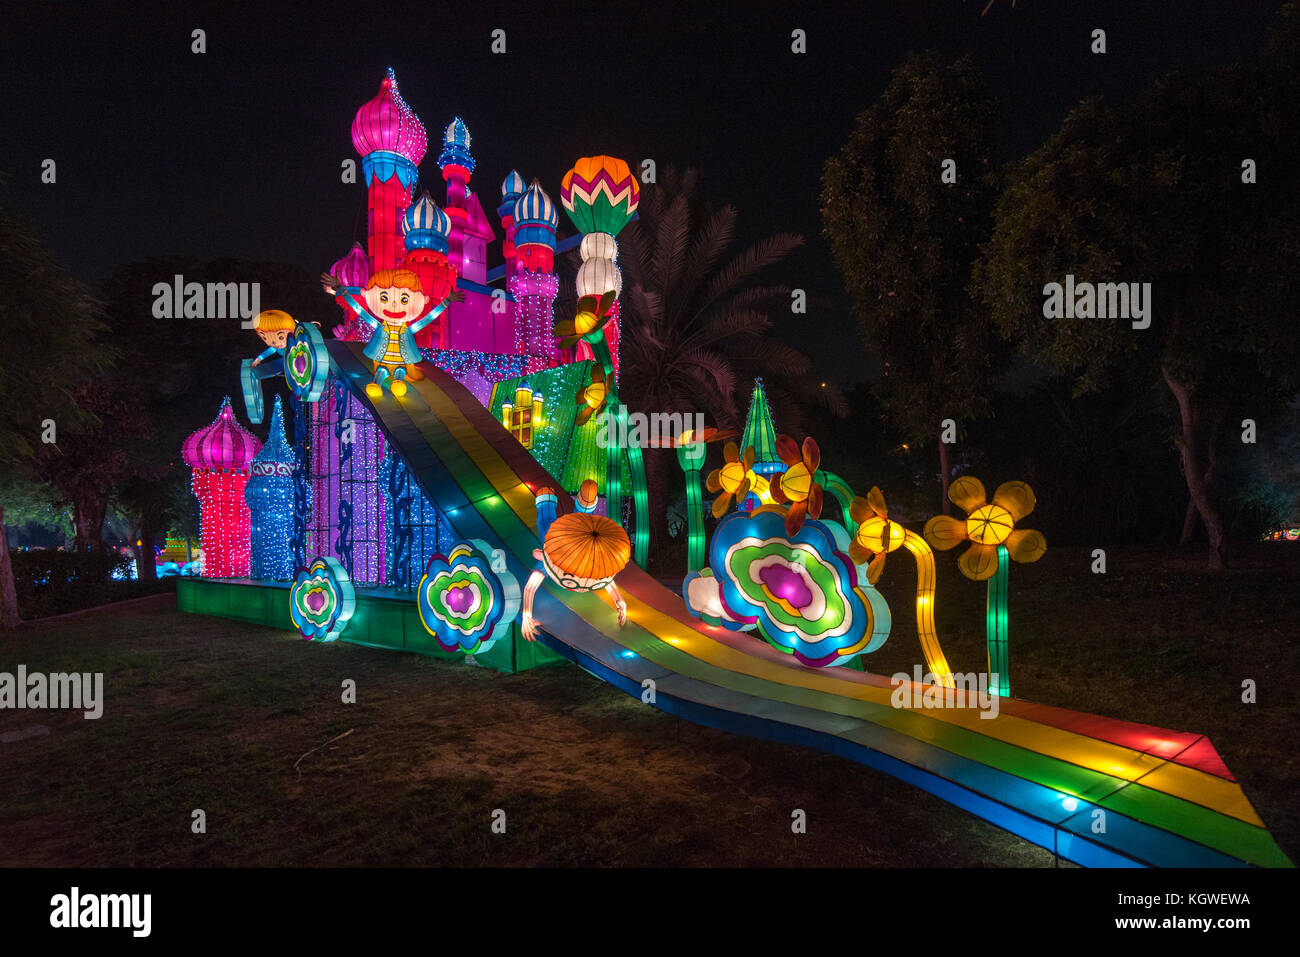 DUBAI, UAE - 28OCT2017: Dubai Garden Glow is an evening attraction in Zabeel Park which operates during the winter - Stock Image